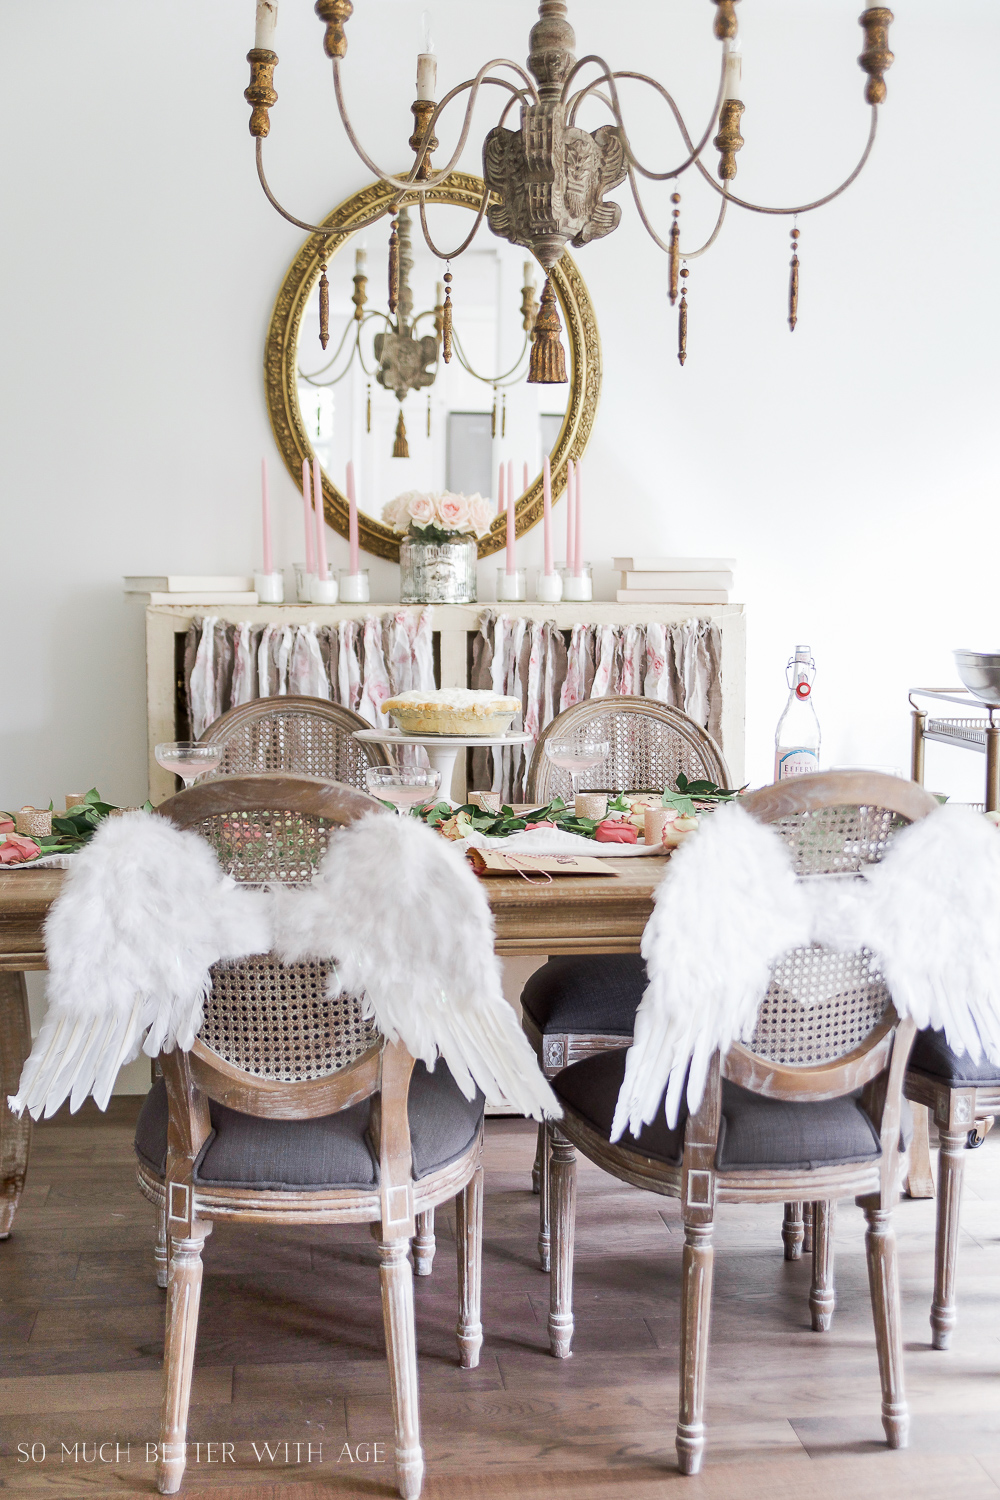 Pretty pink roses Valentine's Day table setting / with angel wings - So Much Better With Age